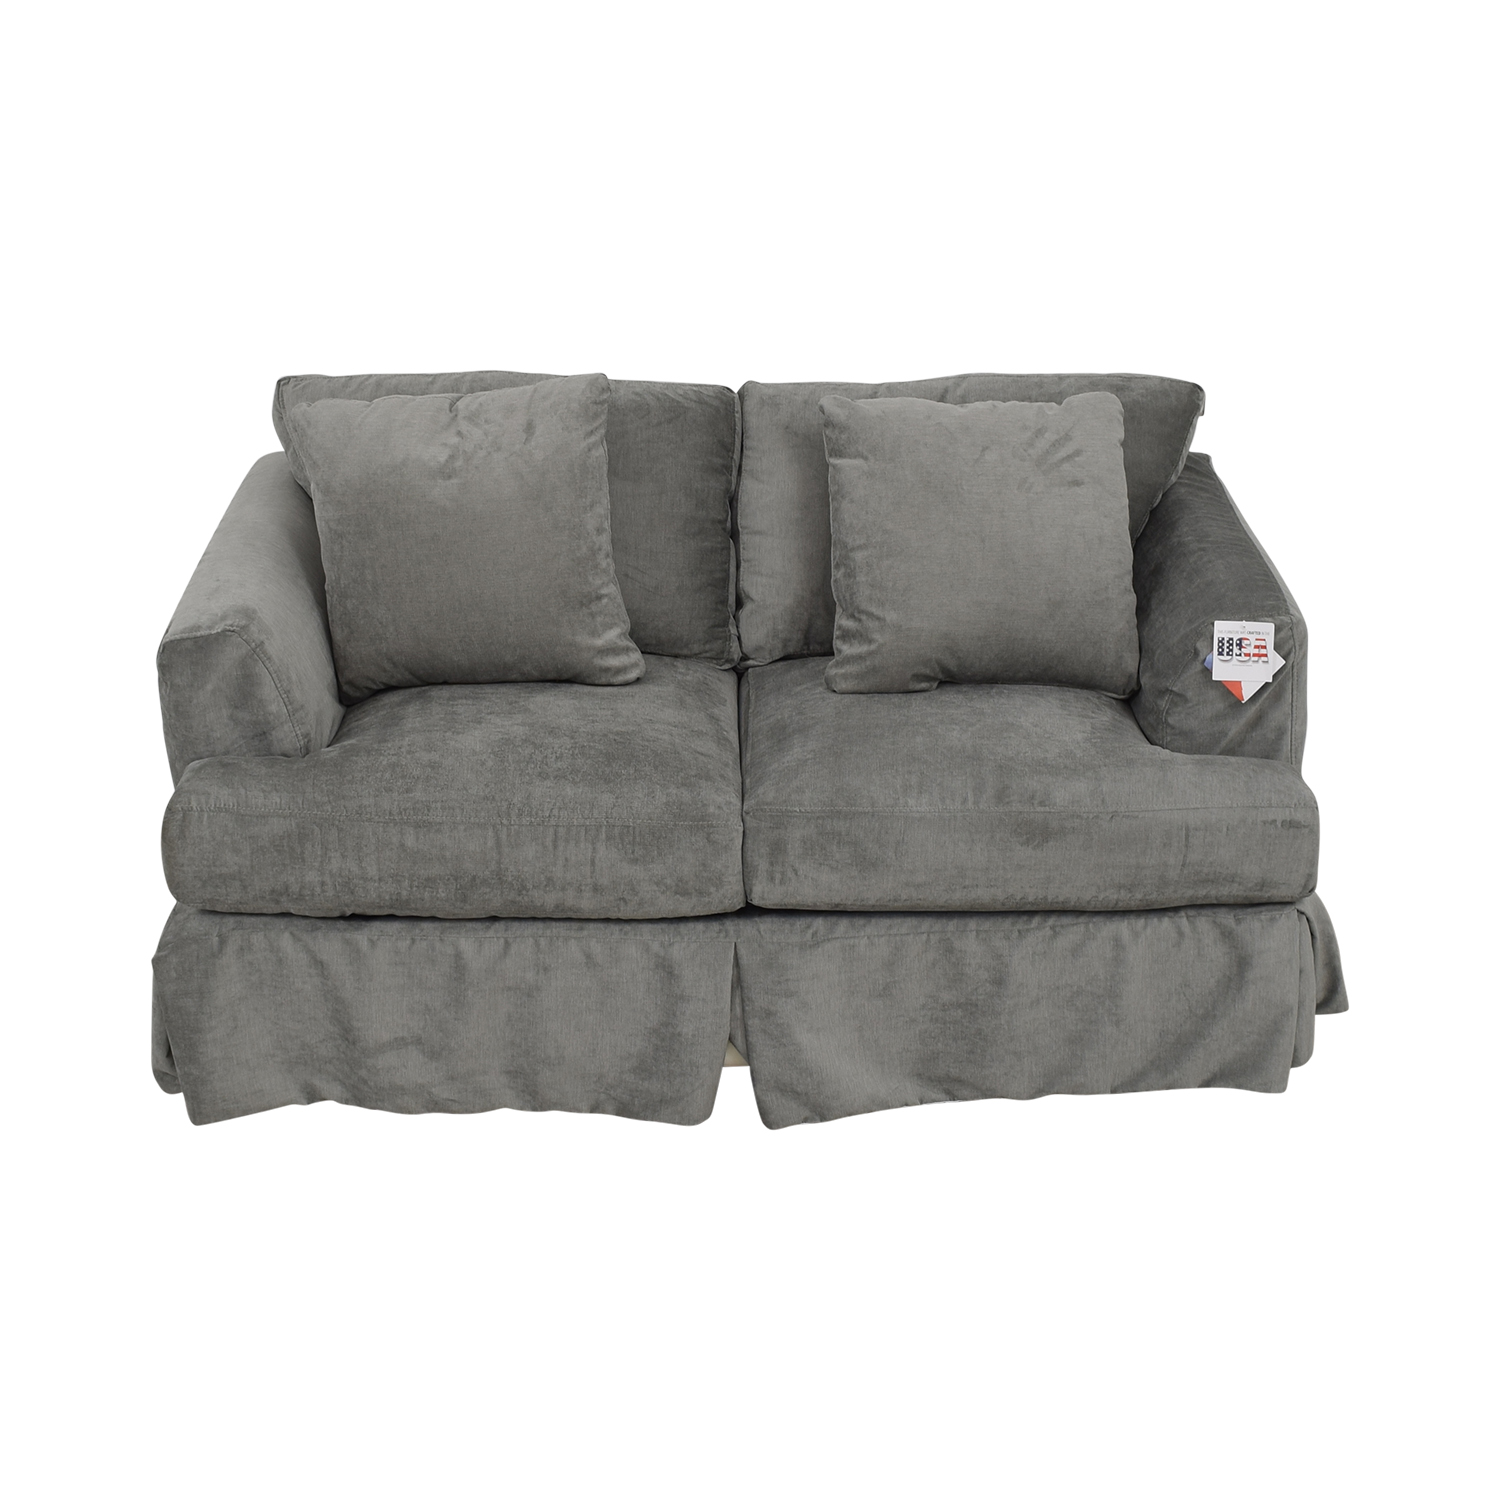 Wayfair Wayfair Grey Upholstered Two-Cushion Loveseat second hand